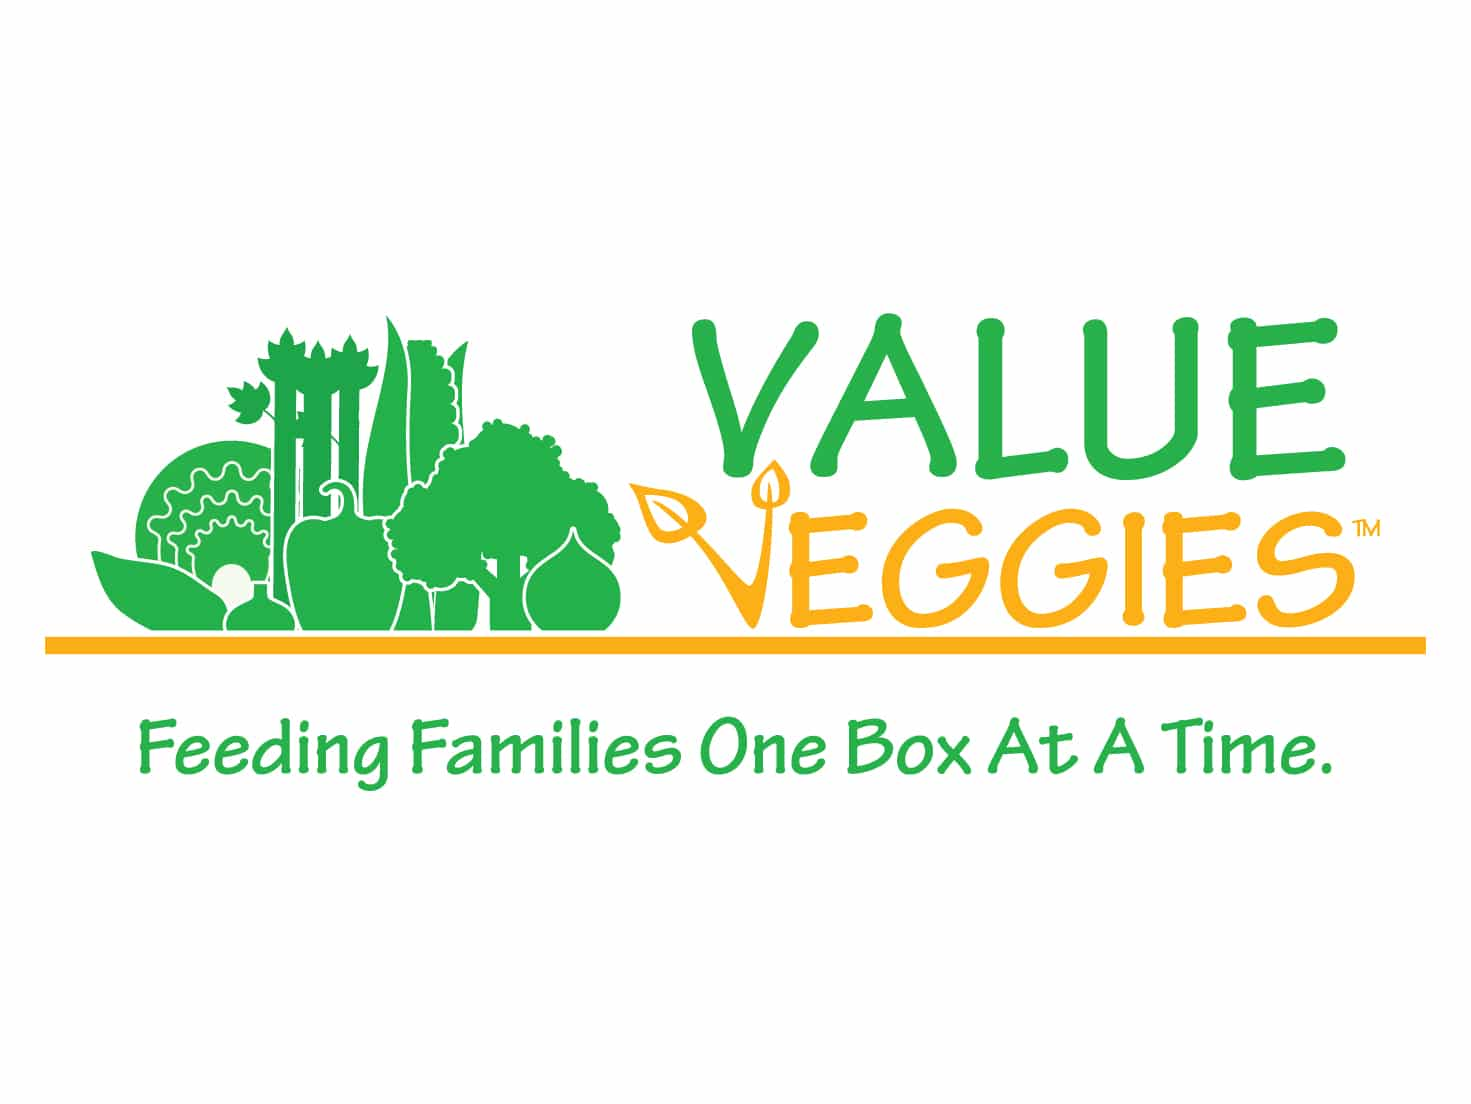 Value Veggies